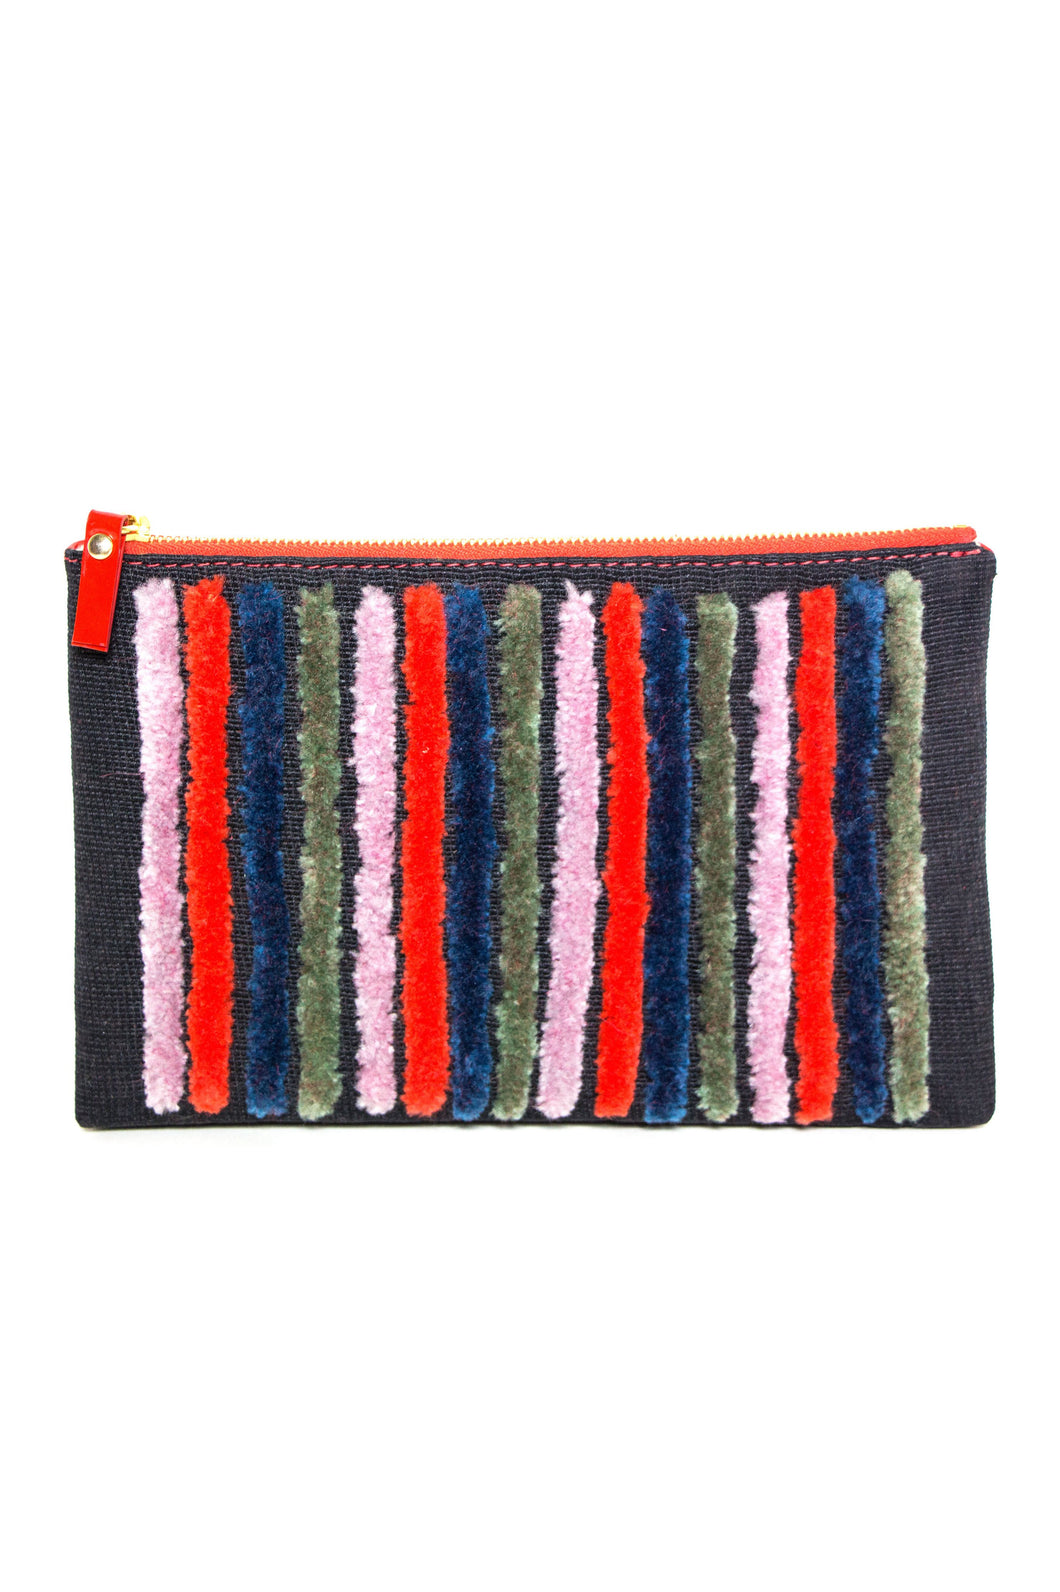 Rebel Embroidered Wool and Patent Leather Clutch